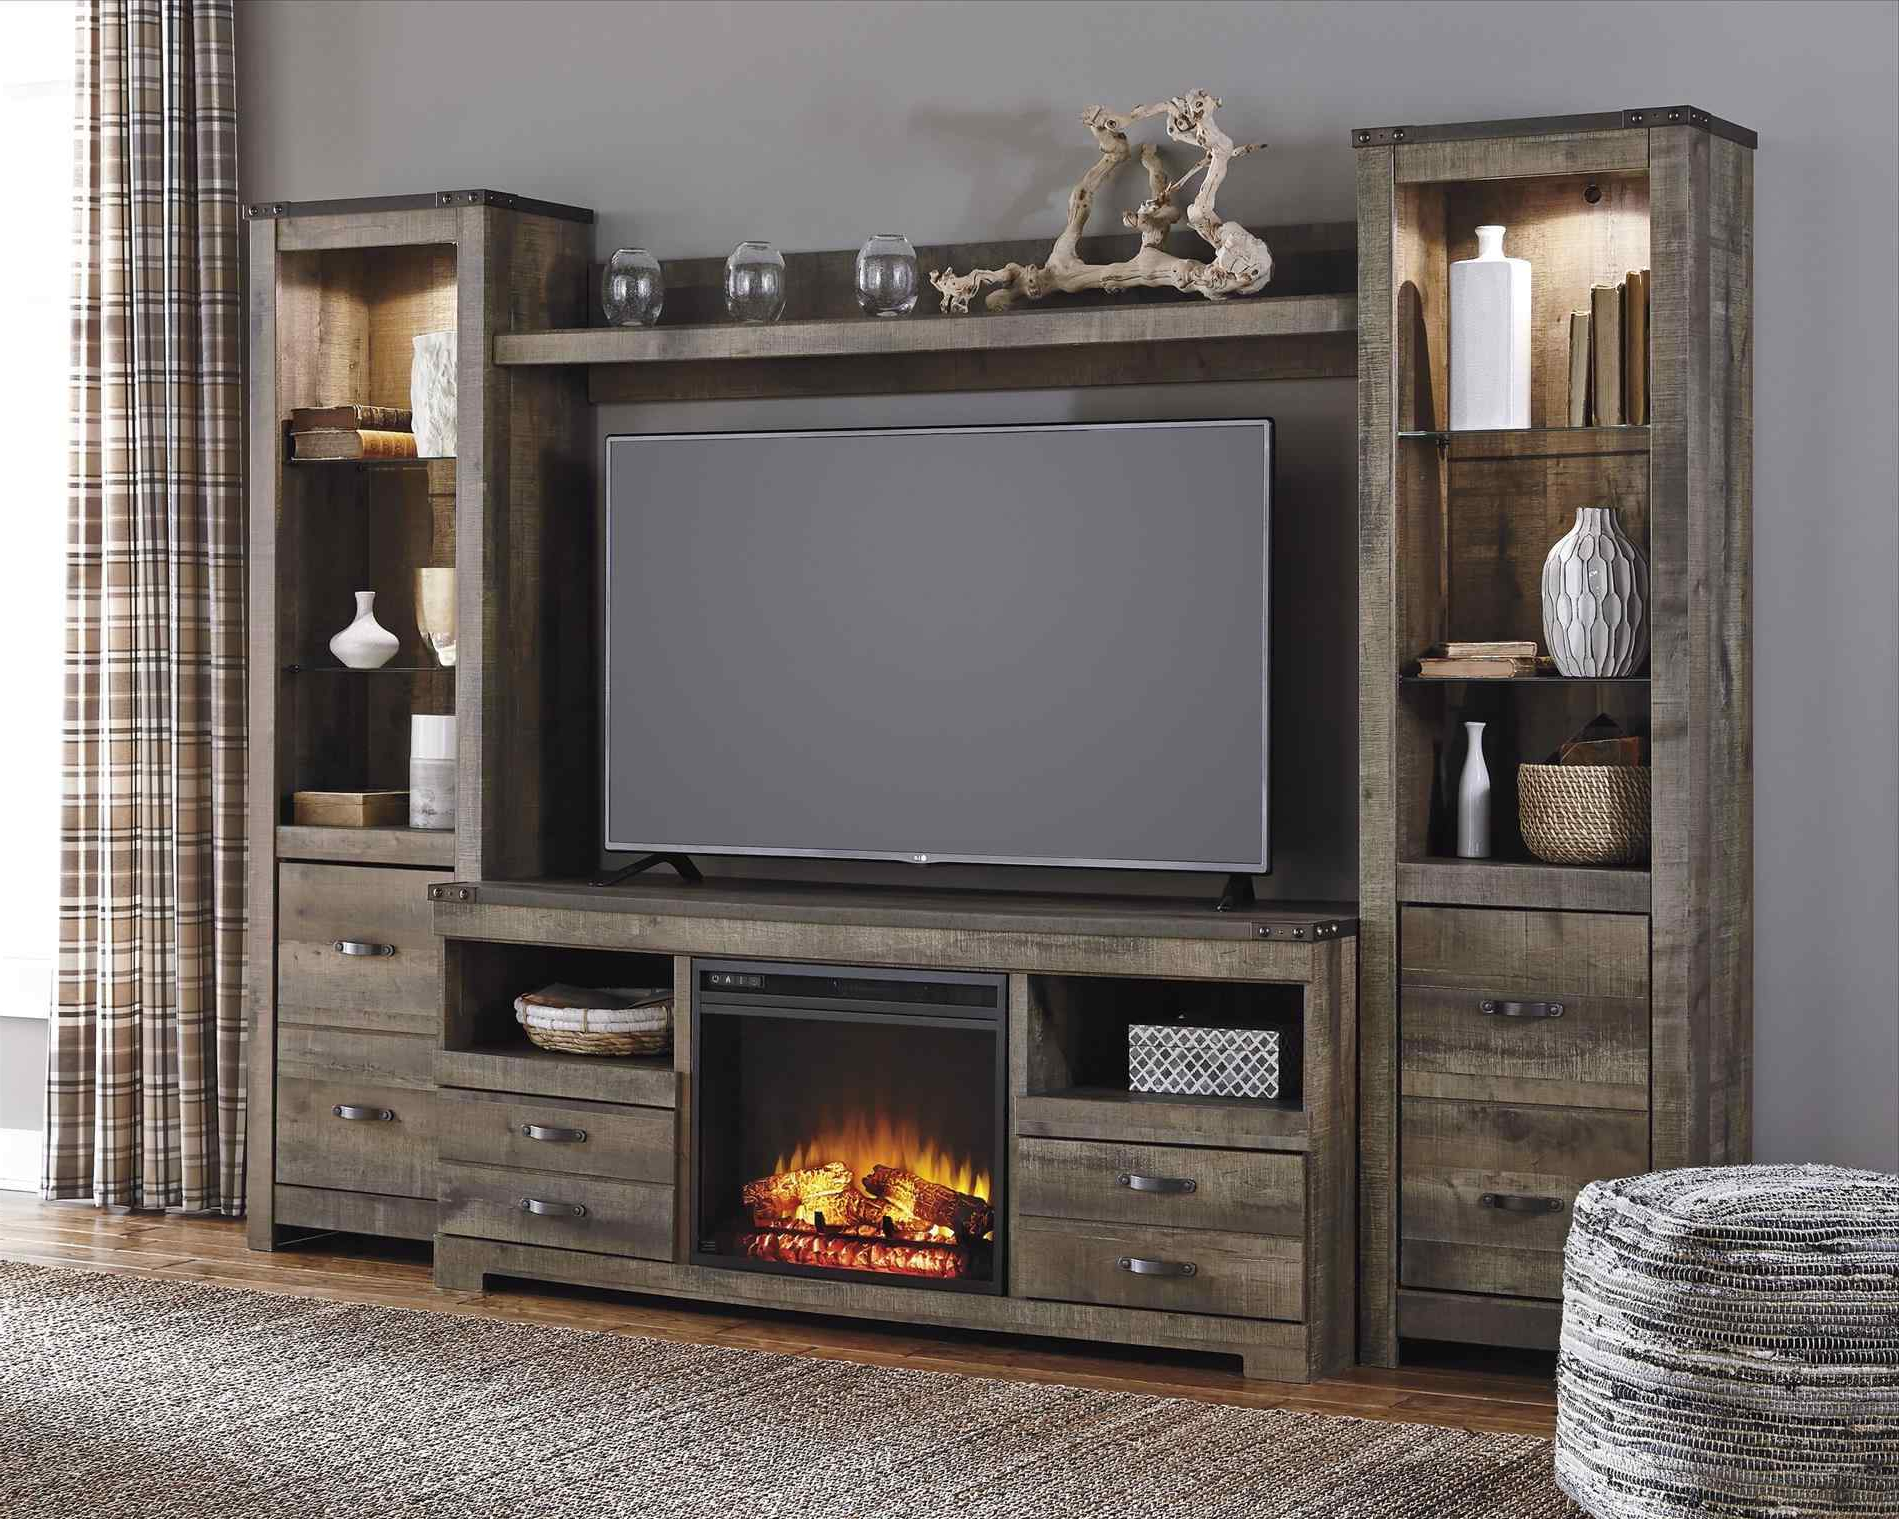 Entertainment Center In Front Of Fireplace | Sofa Cope Pertaining To Electric Fireplace Tv Stands With Shelf (View 14 of 20)